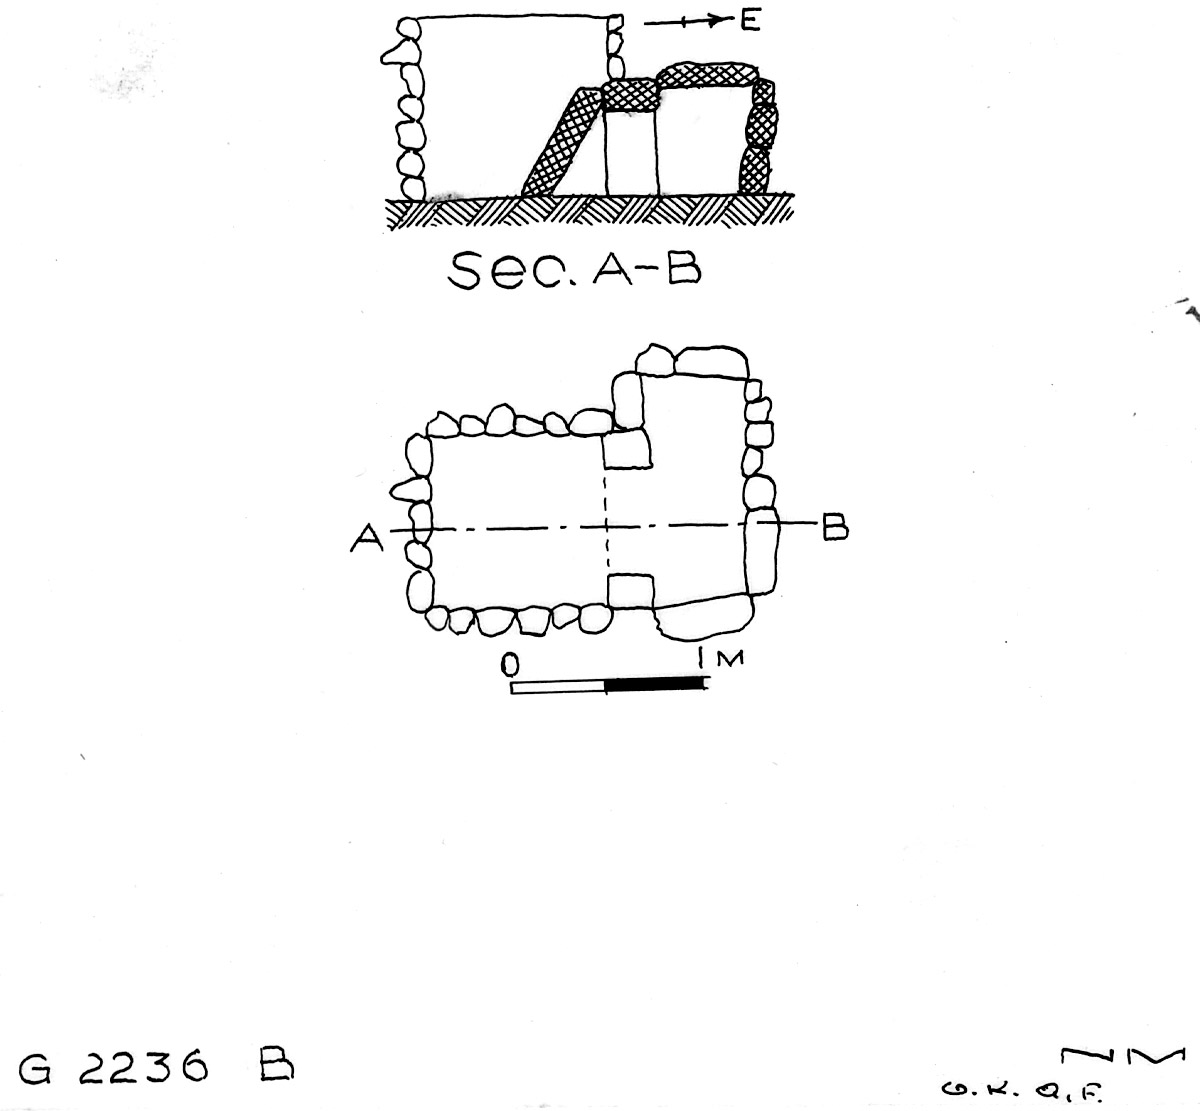 Maps and plans: G 2236, Shaft B